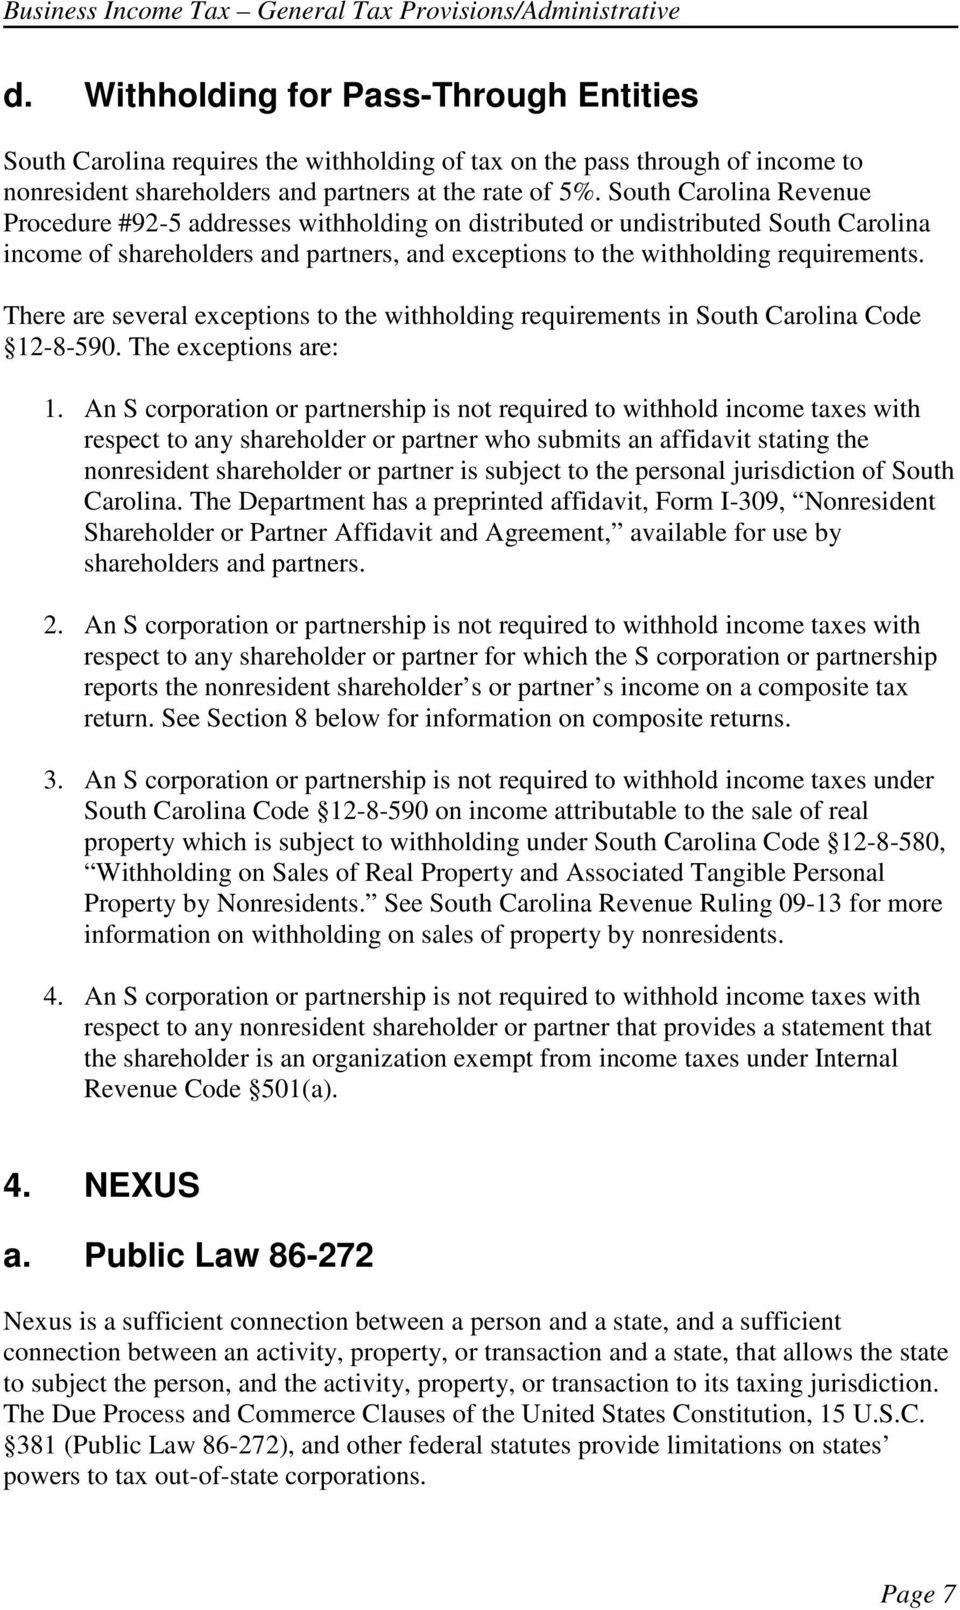 South Carolina Revenue Procedure #92-5 addresses withholding on distributed or undistributed South Carolina income of shareholders and partners, and exceptions to the withholding requirements.